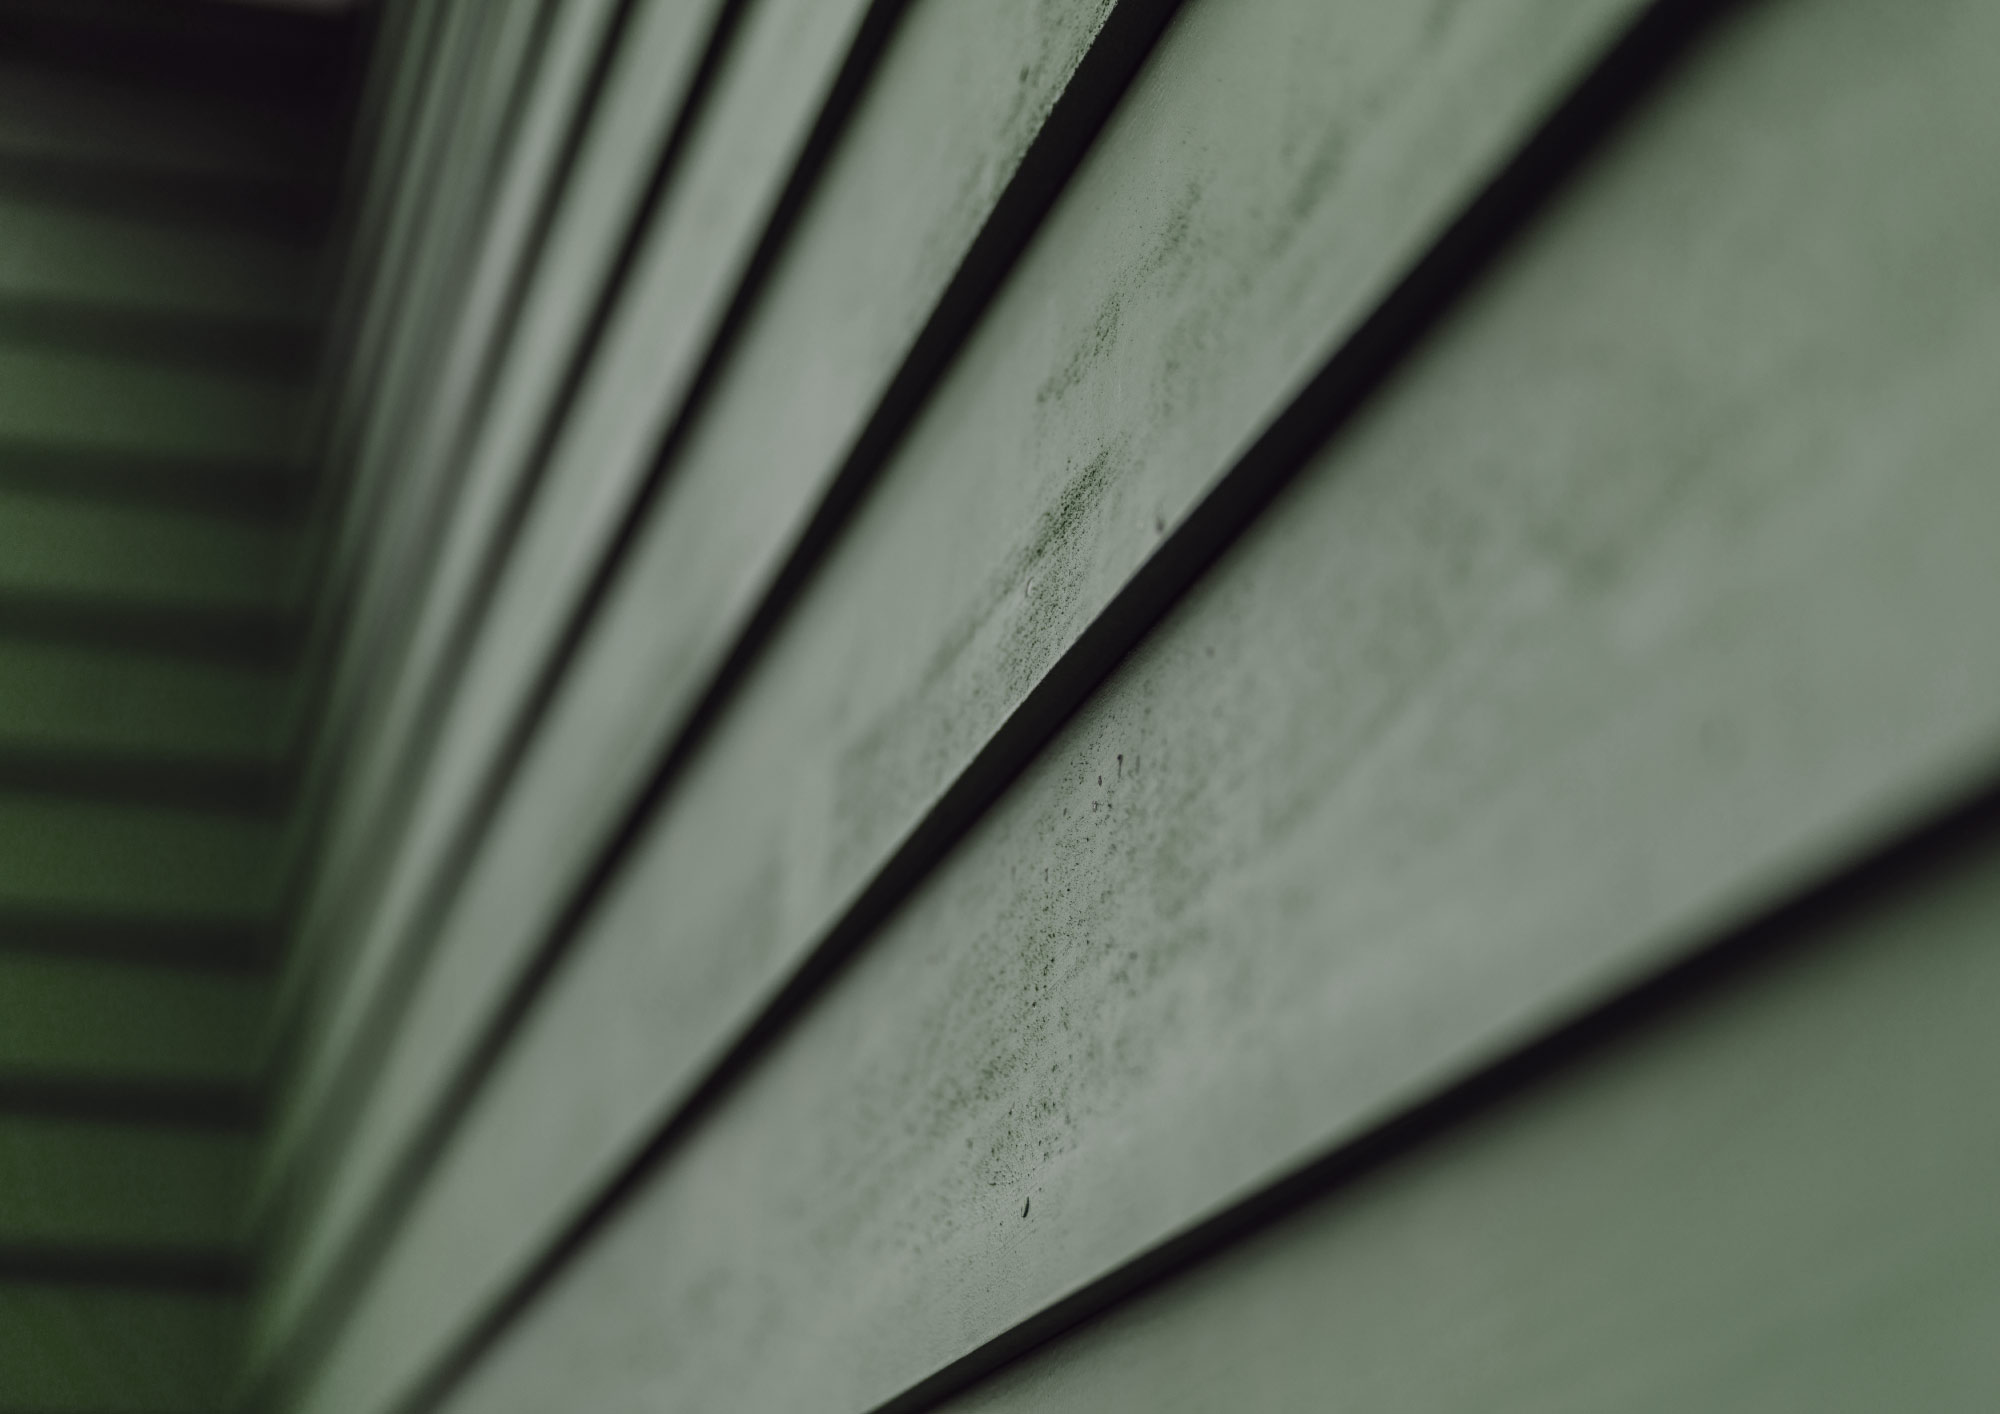 green timberthane siding up close